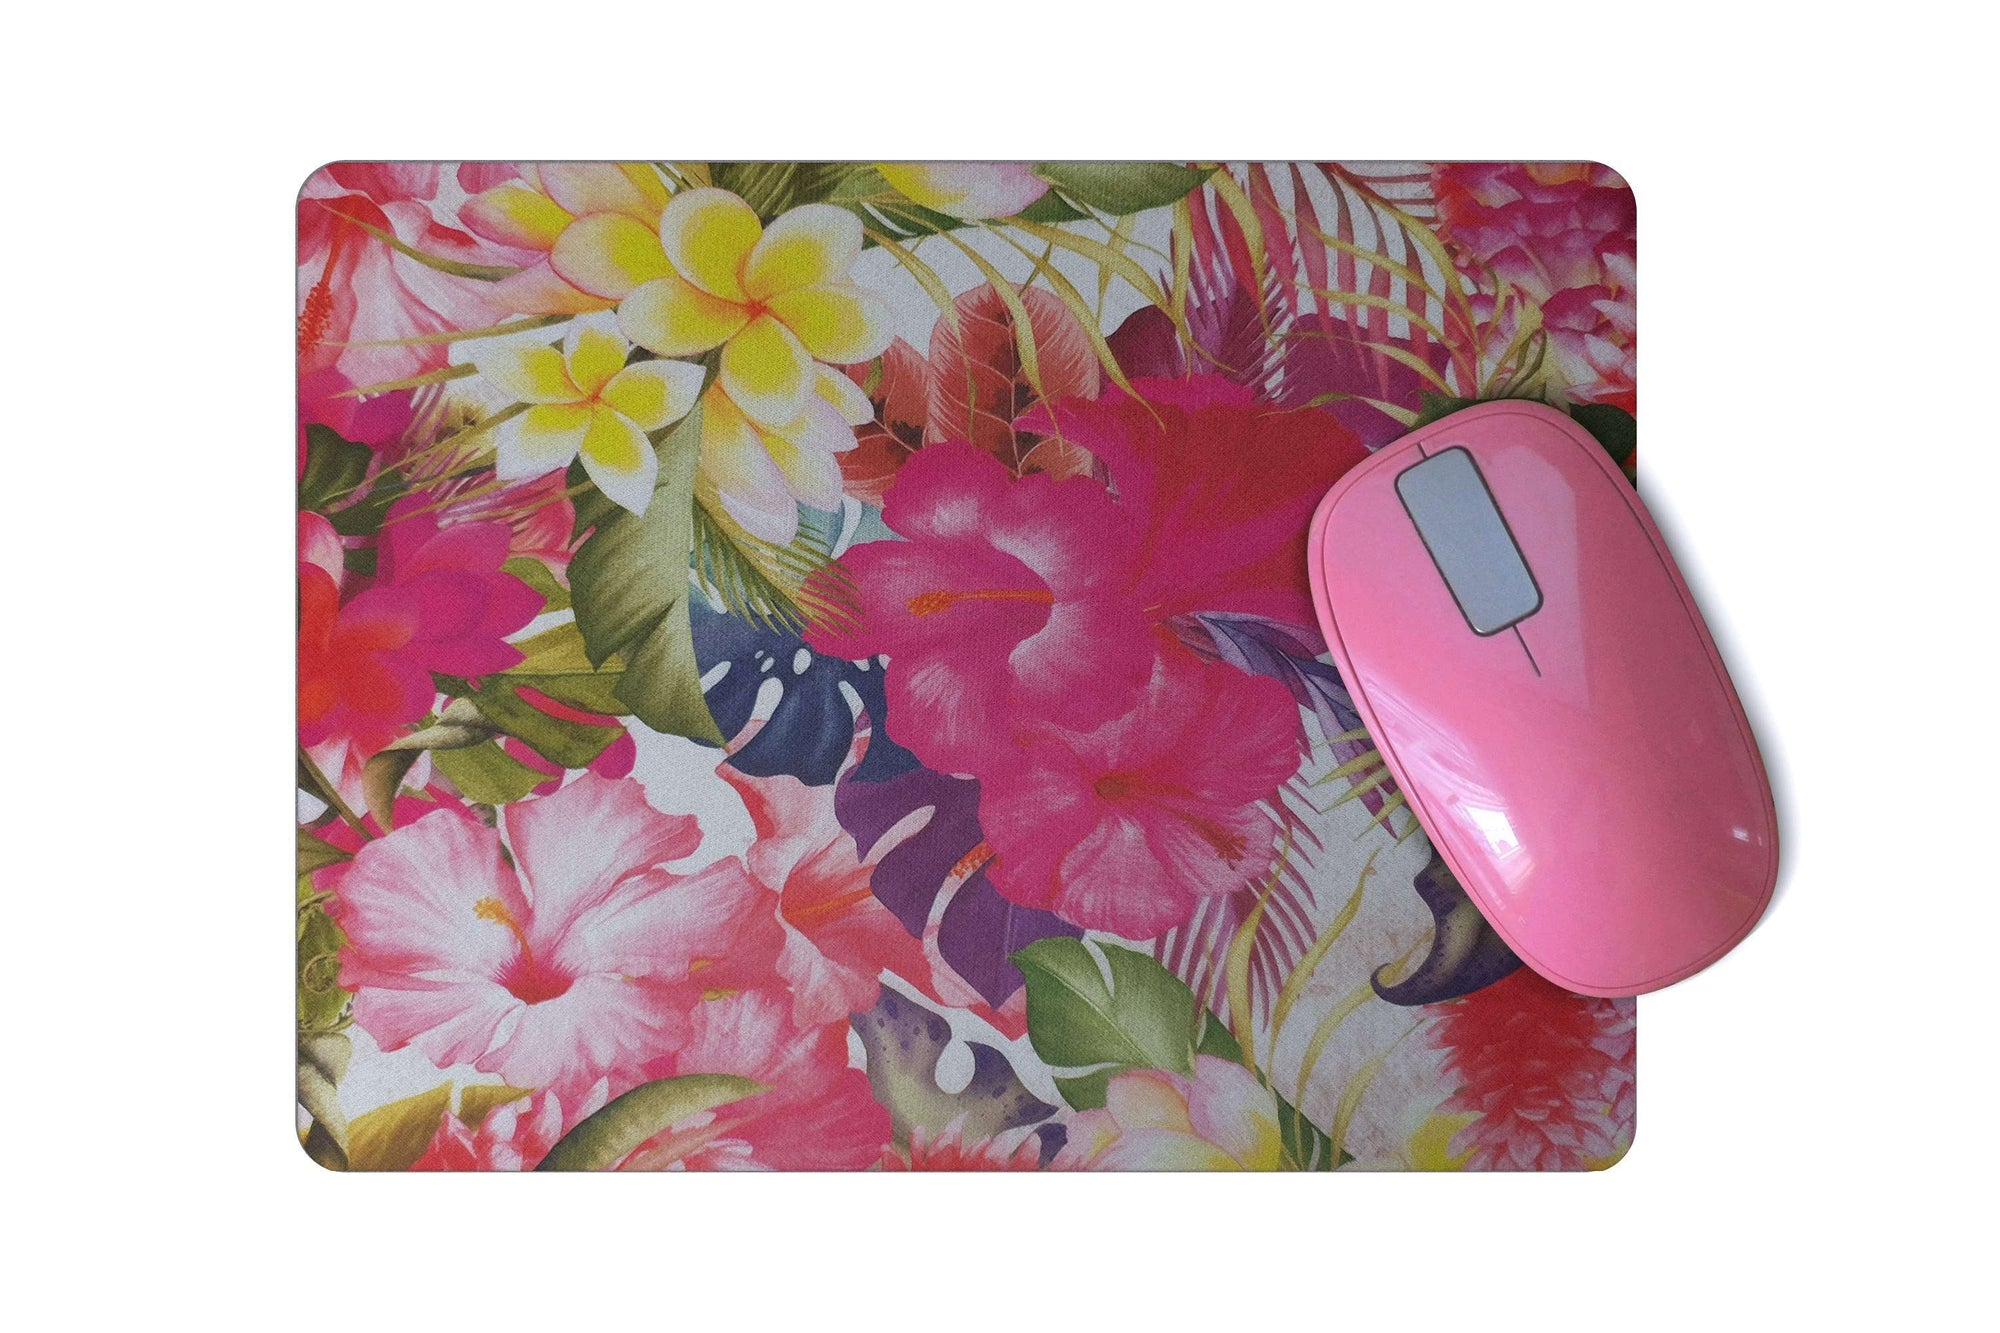 Hey Casey! Custom Printed mouse pads